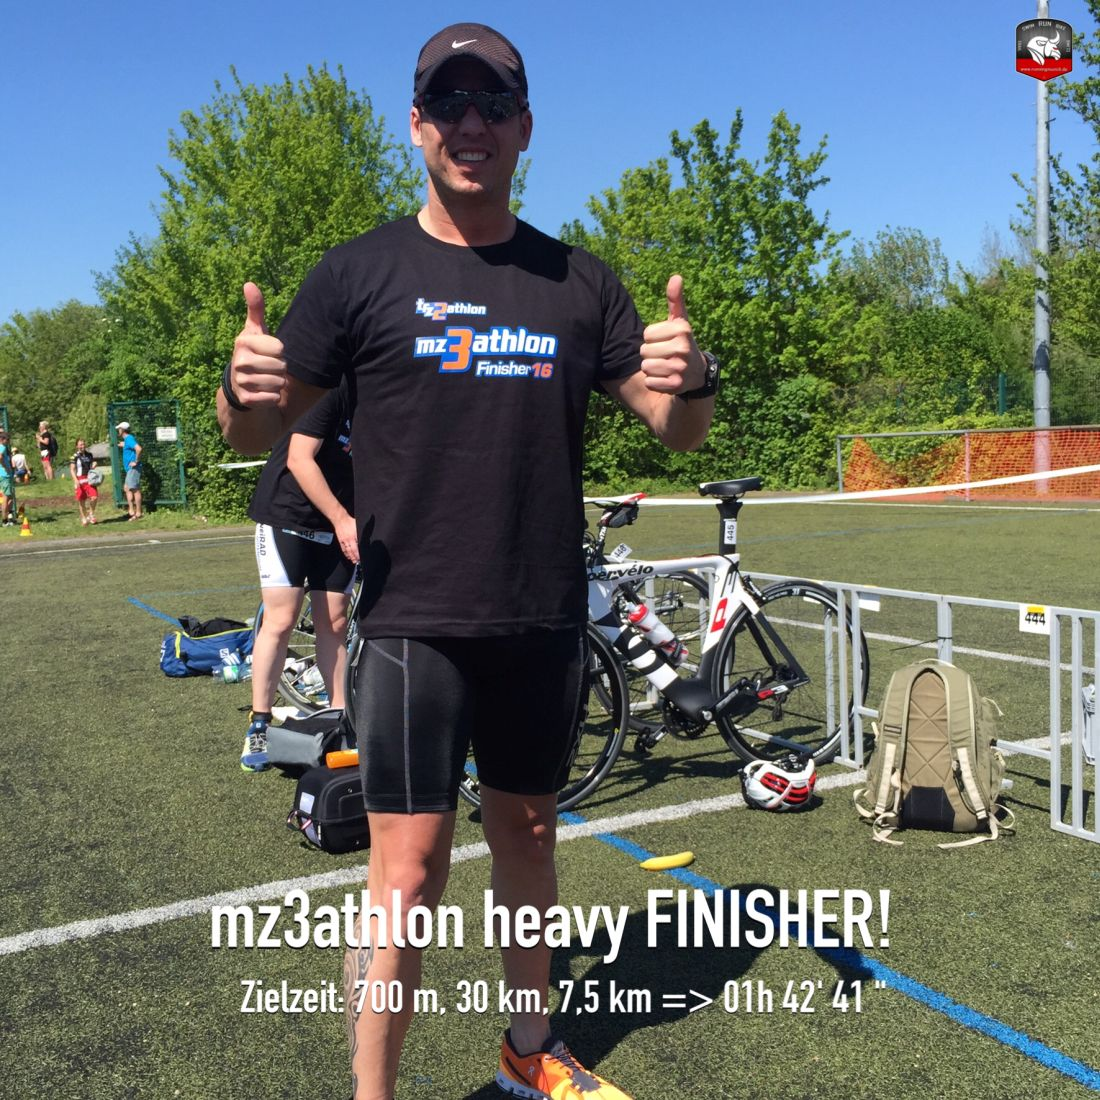 mz3athlon heavy Triathlon 2016 Finisher